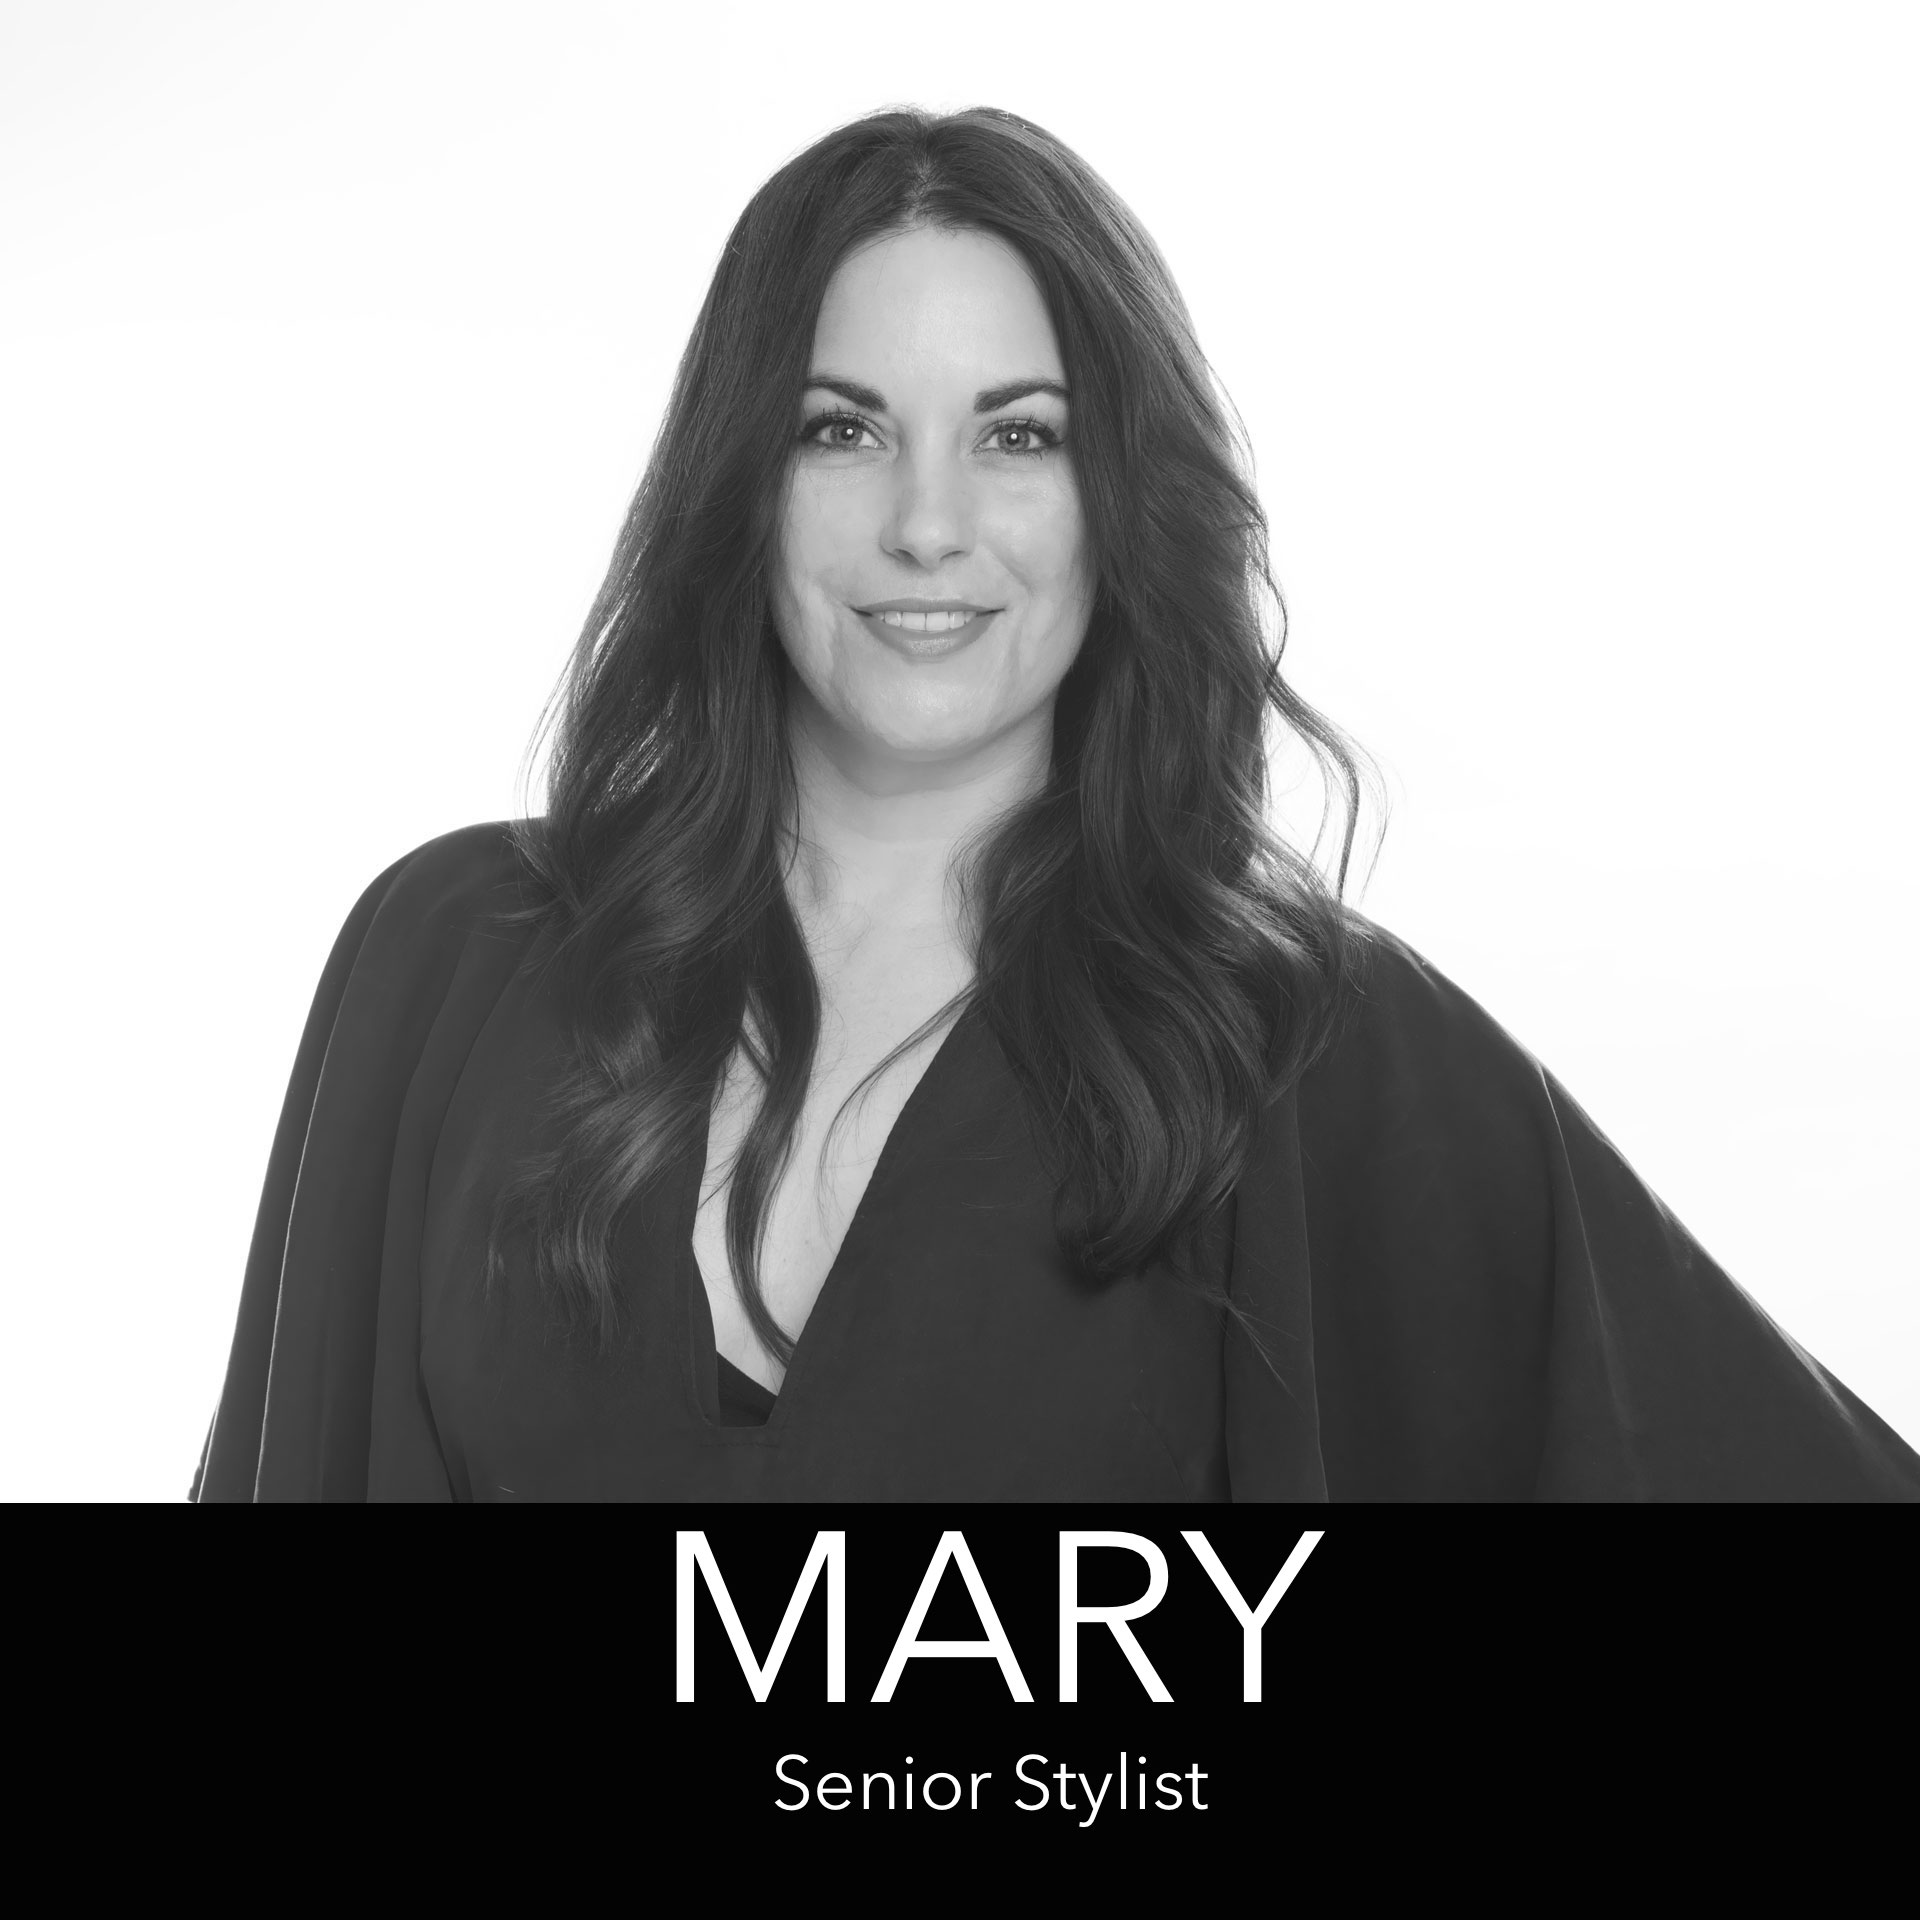 Mary AALAM salon Team Plano Frisco Dallas North Best Hair salon Hair Master Stylist Top Colorist Color Specialist Women Mens Haircut Upscale High End Allen McKinney TX DFW